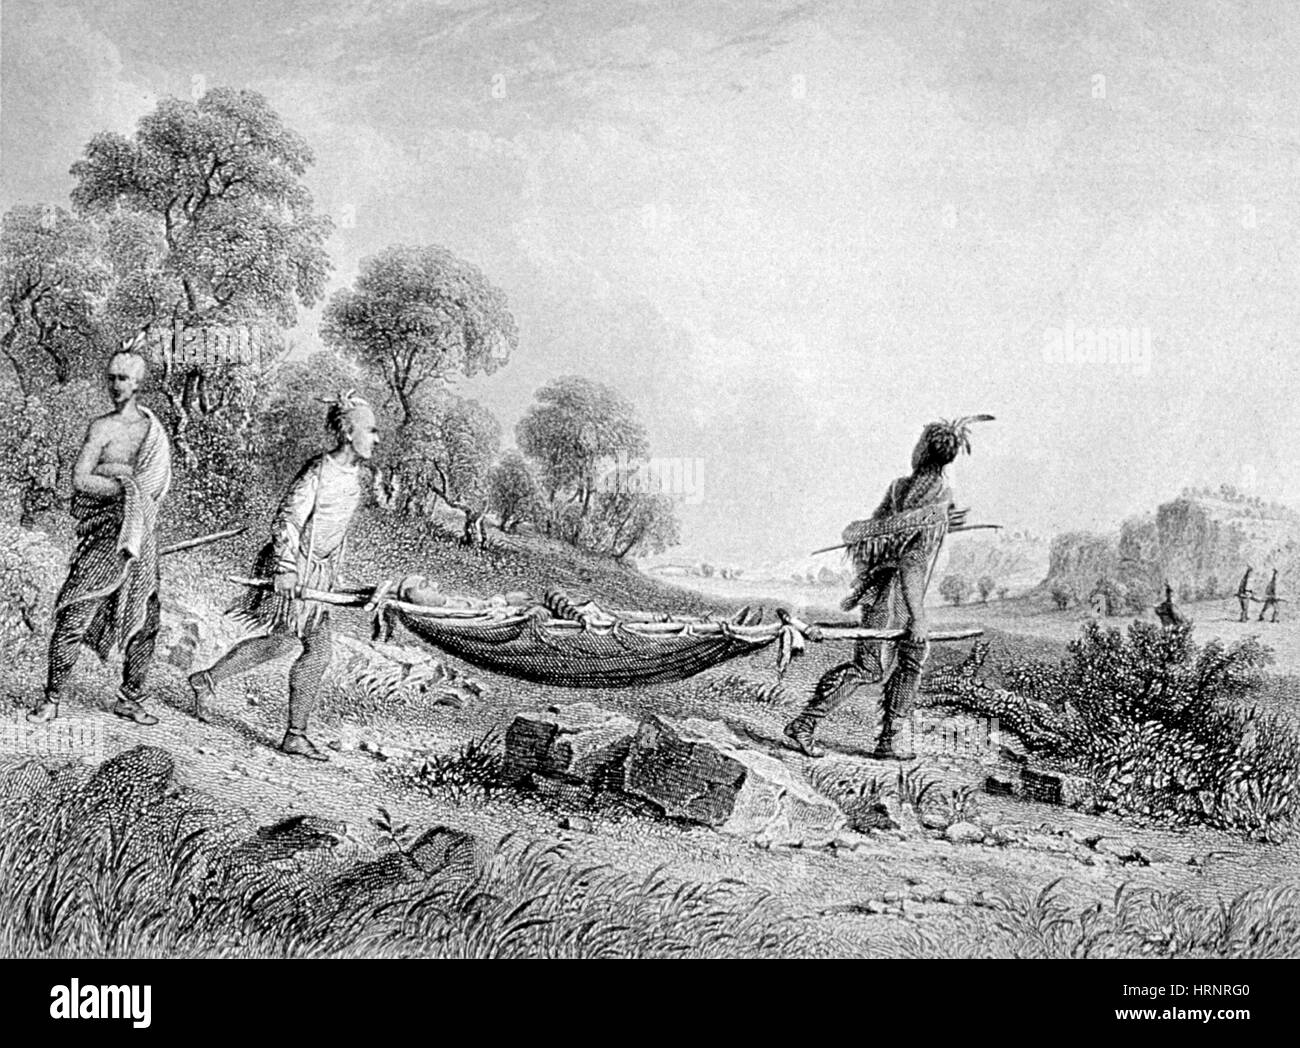 American Indians Transport Wounded, 19th Century - Stock Image